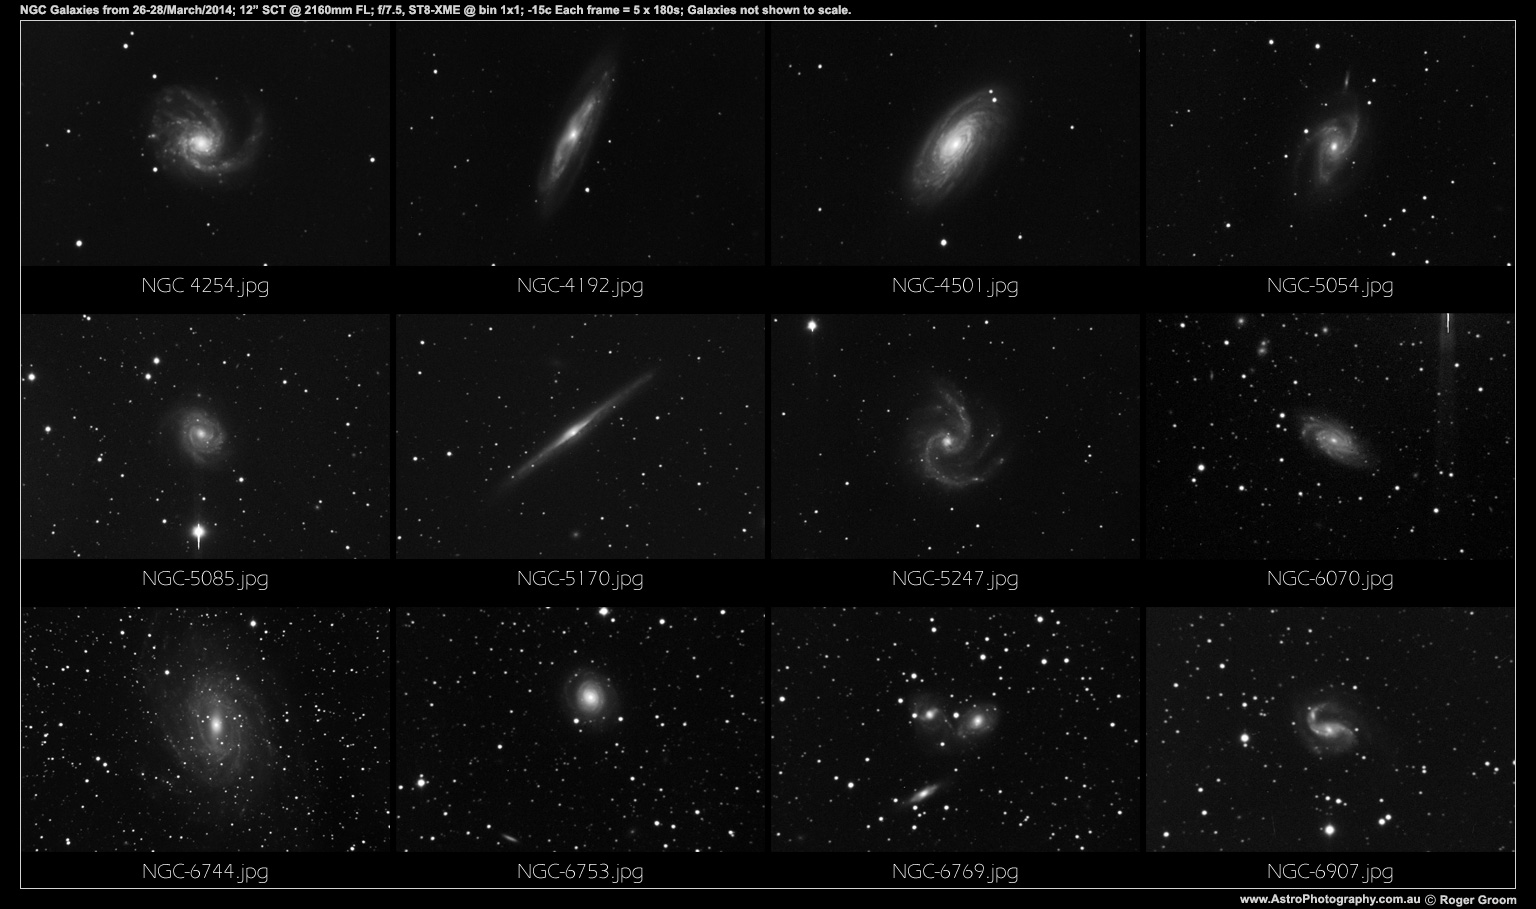 NGC Galaxies 26 28 March 2014